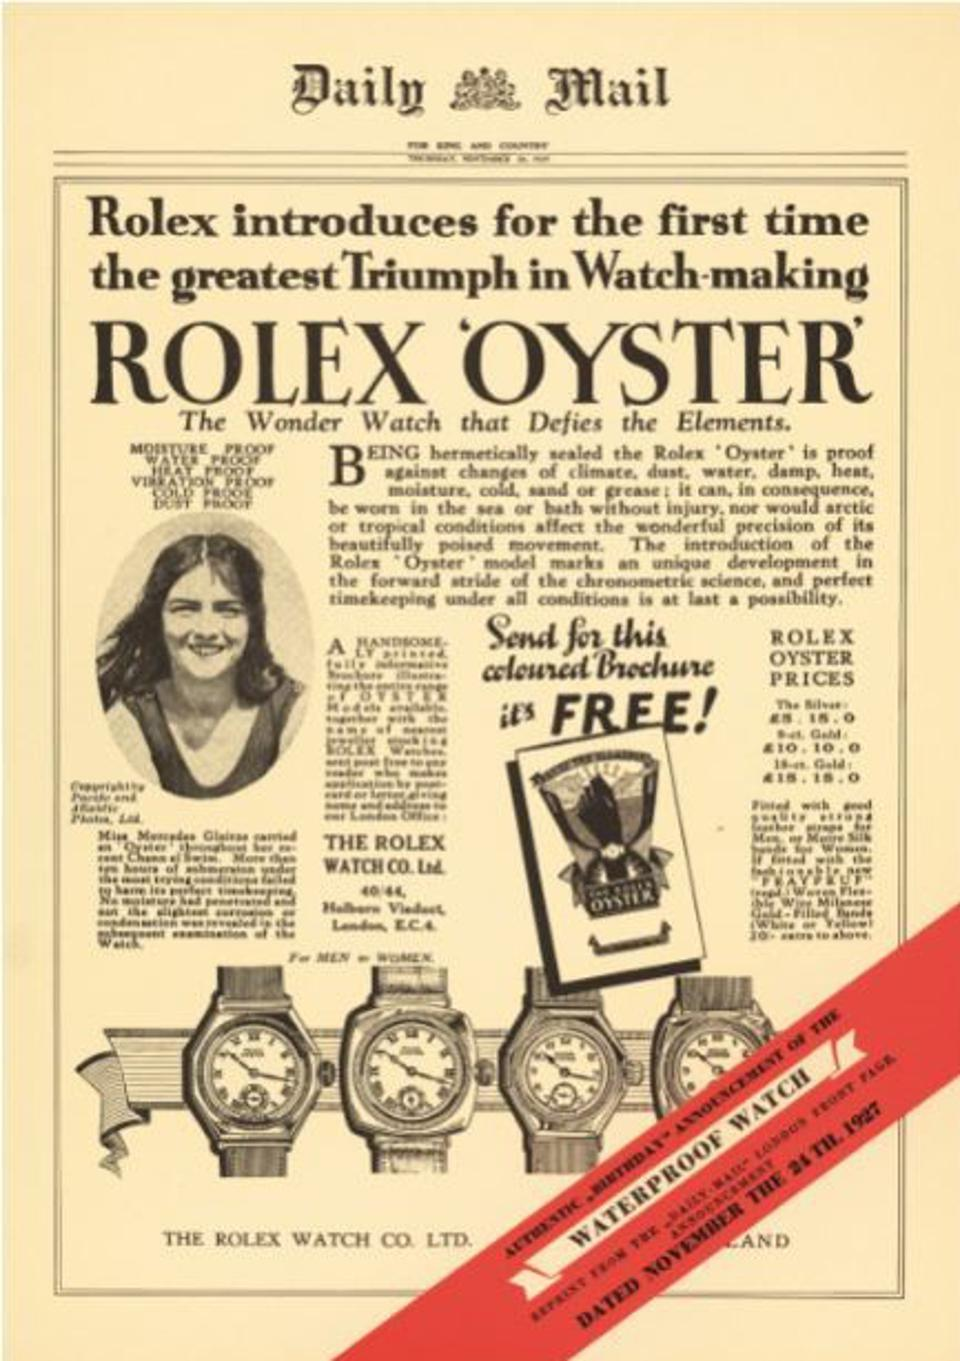 A 1927 advert for Rolex Oyster watch.